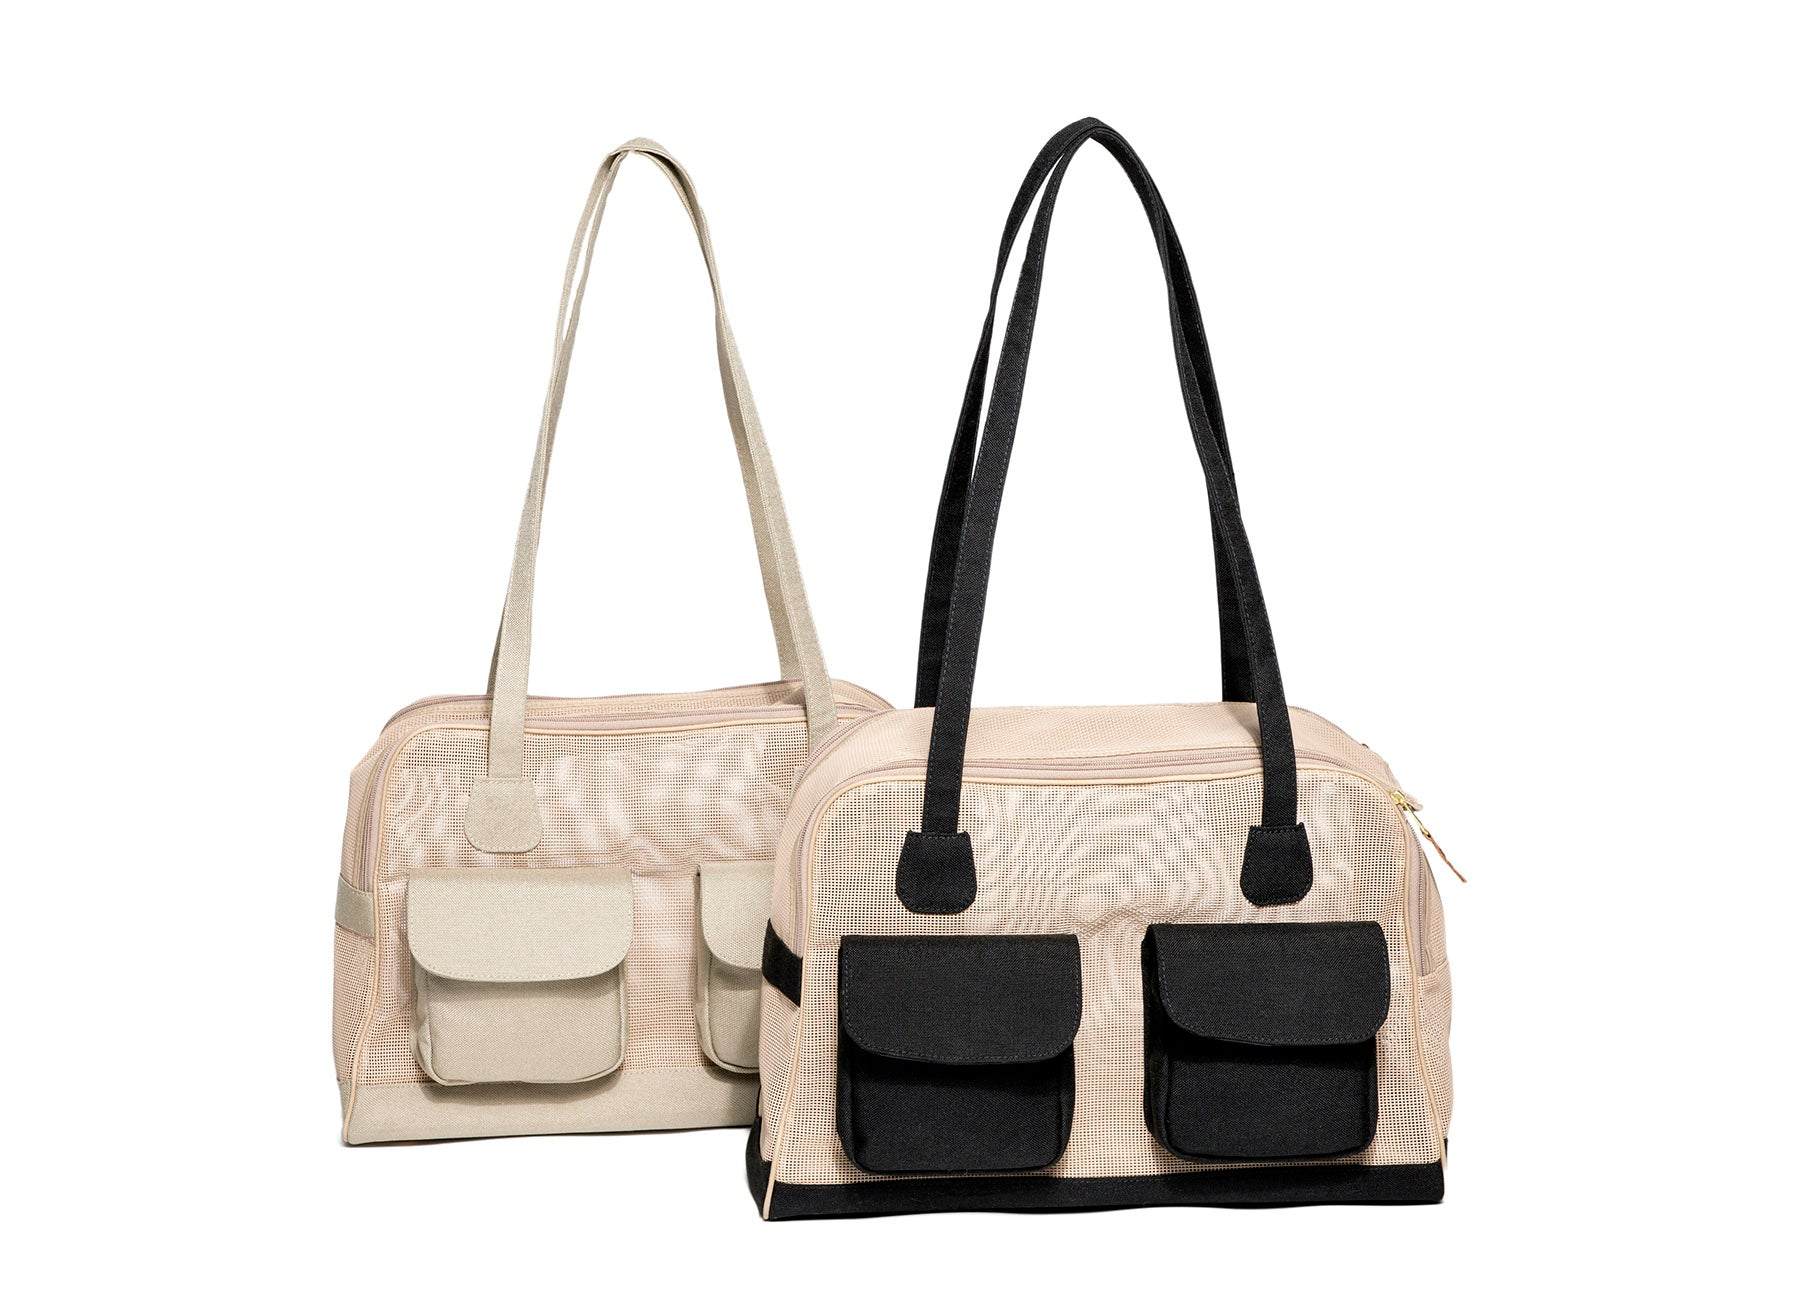 Spring/Summer - All Mesh Spring/Summer - Beige w/Black Canvas - w/Beige Canvas